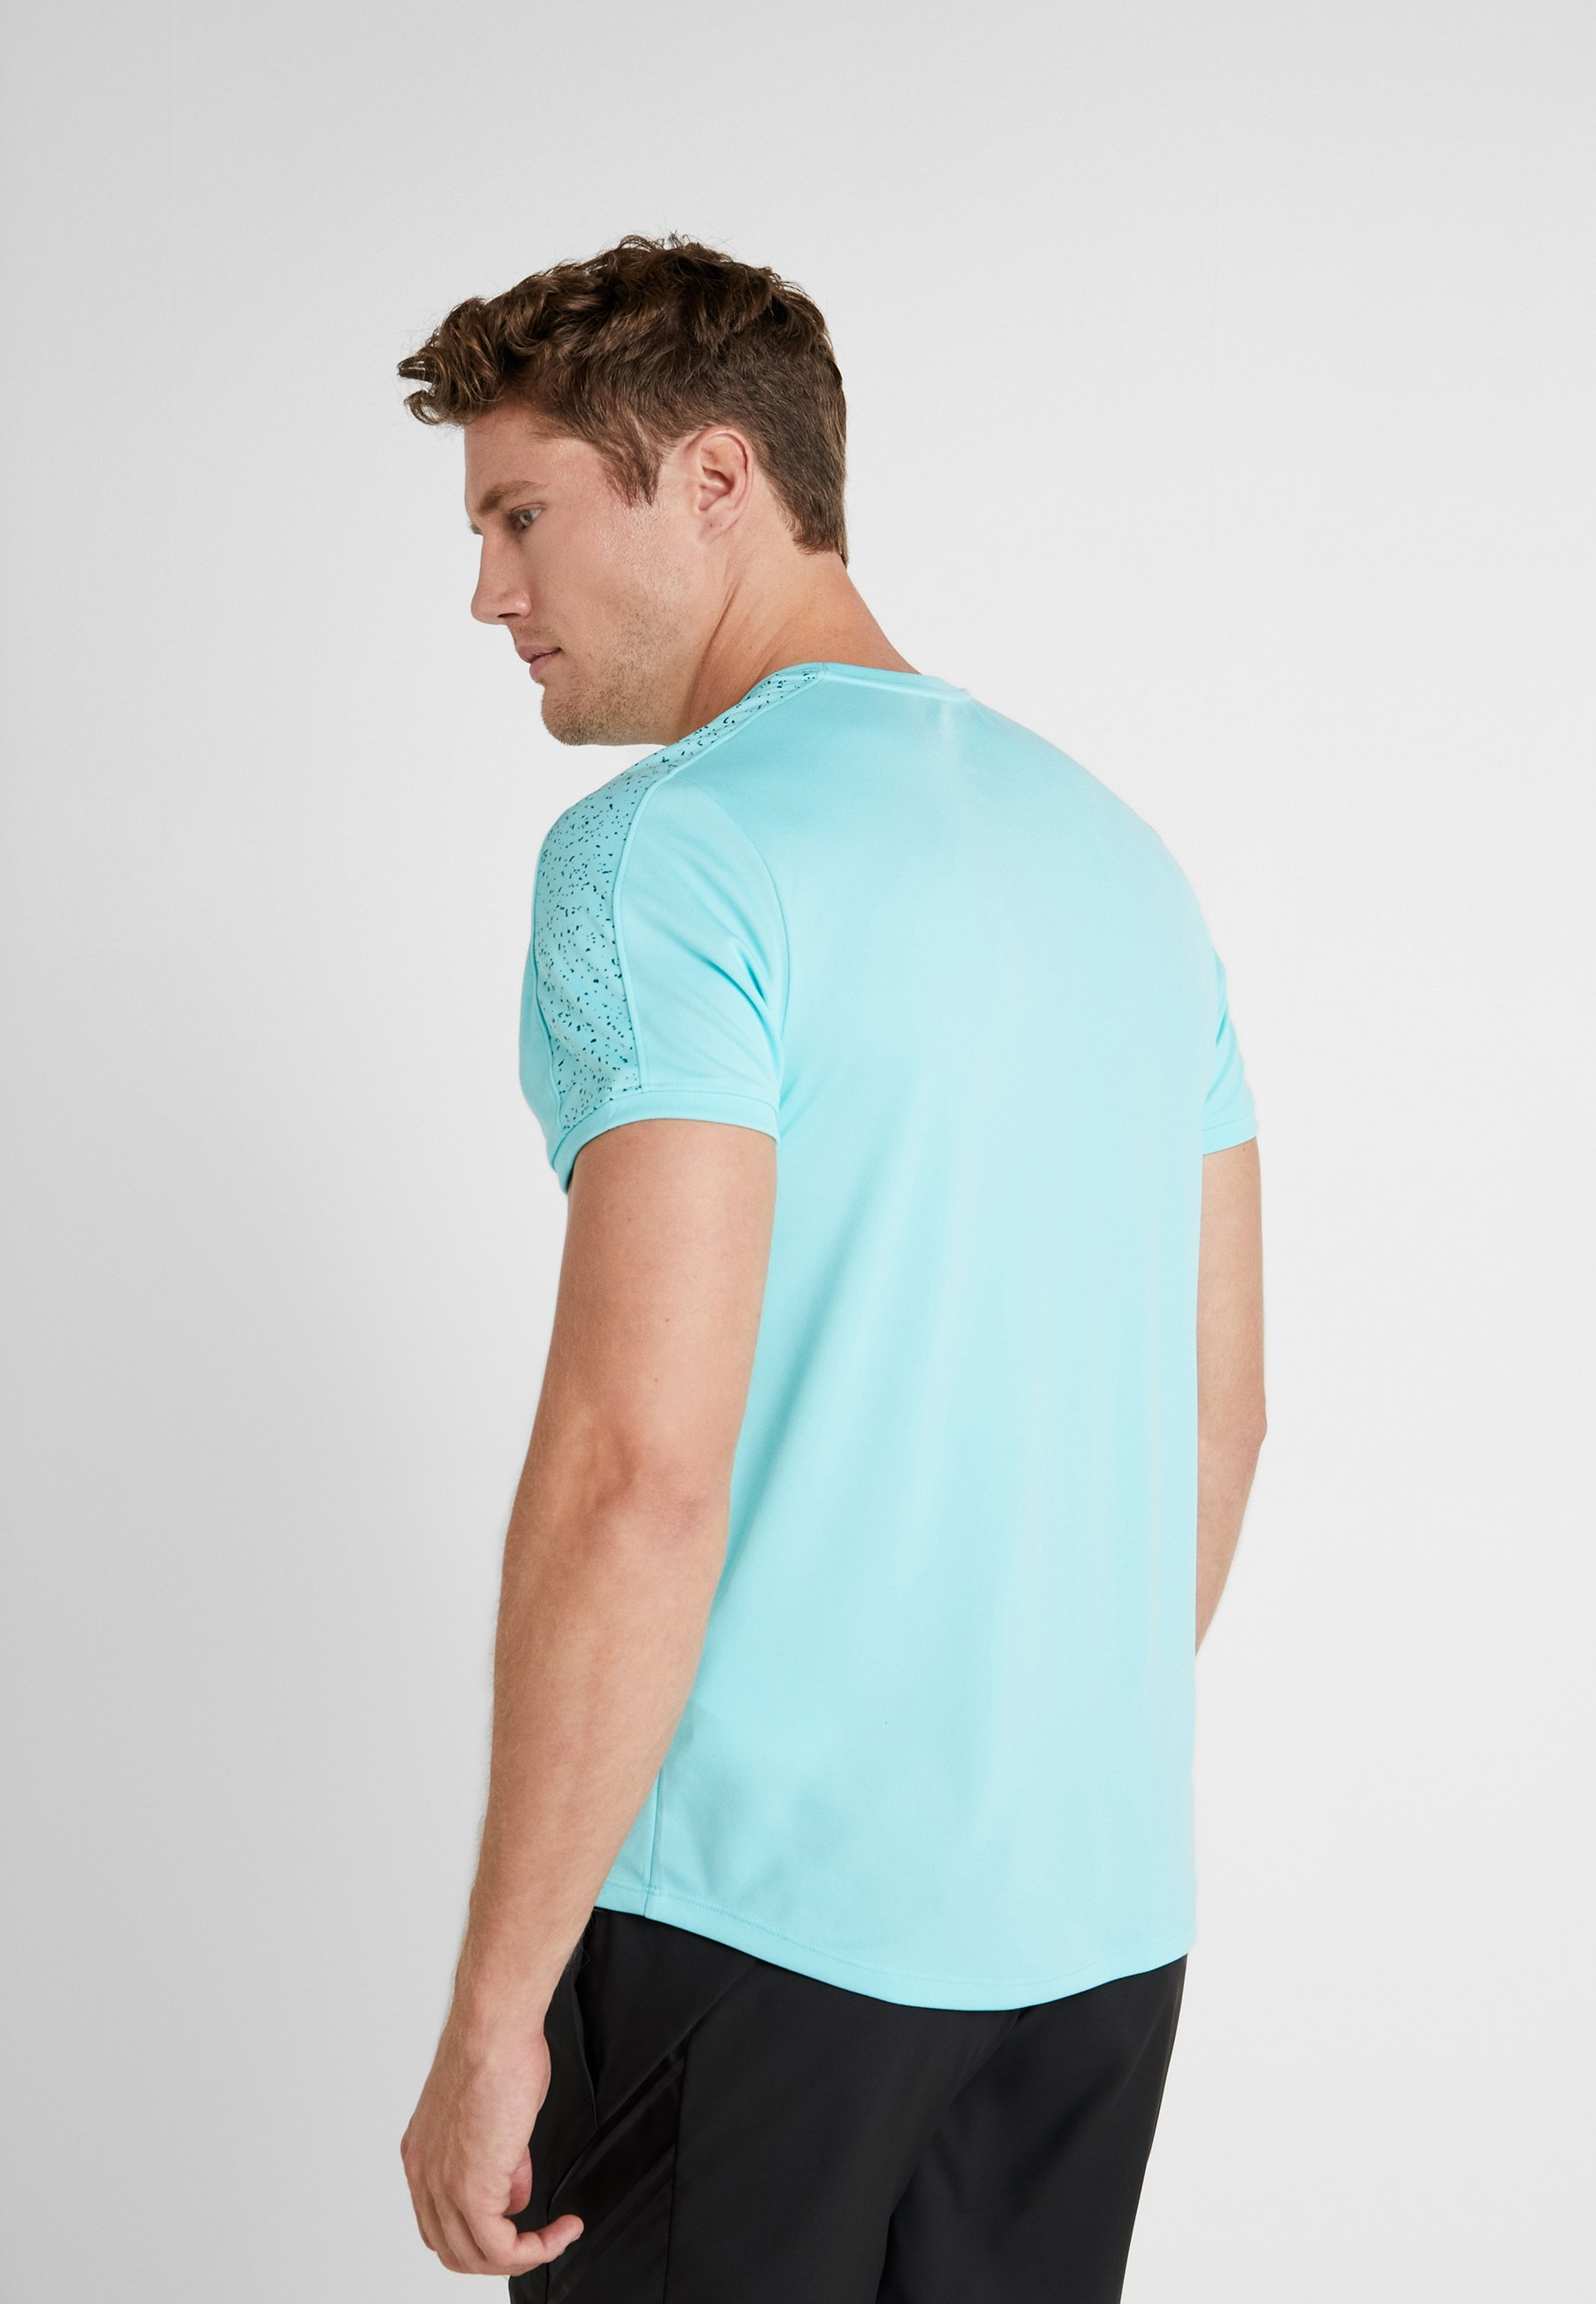 Performance Light Aqua DryT shirt Nike Con Stampa black l1KJcu3TF